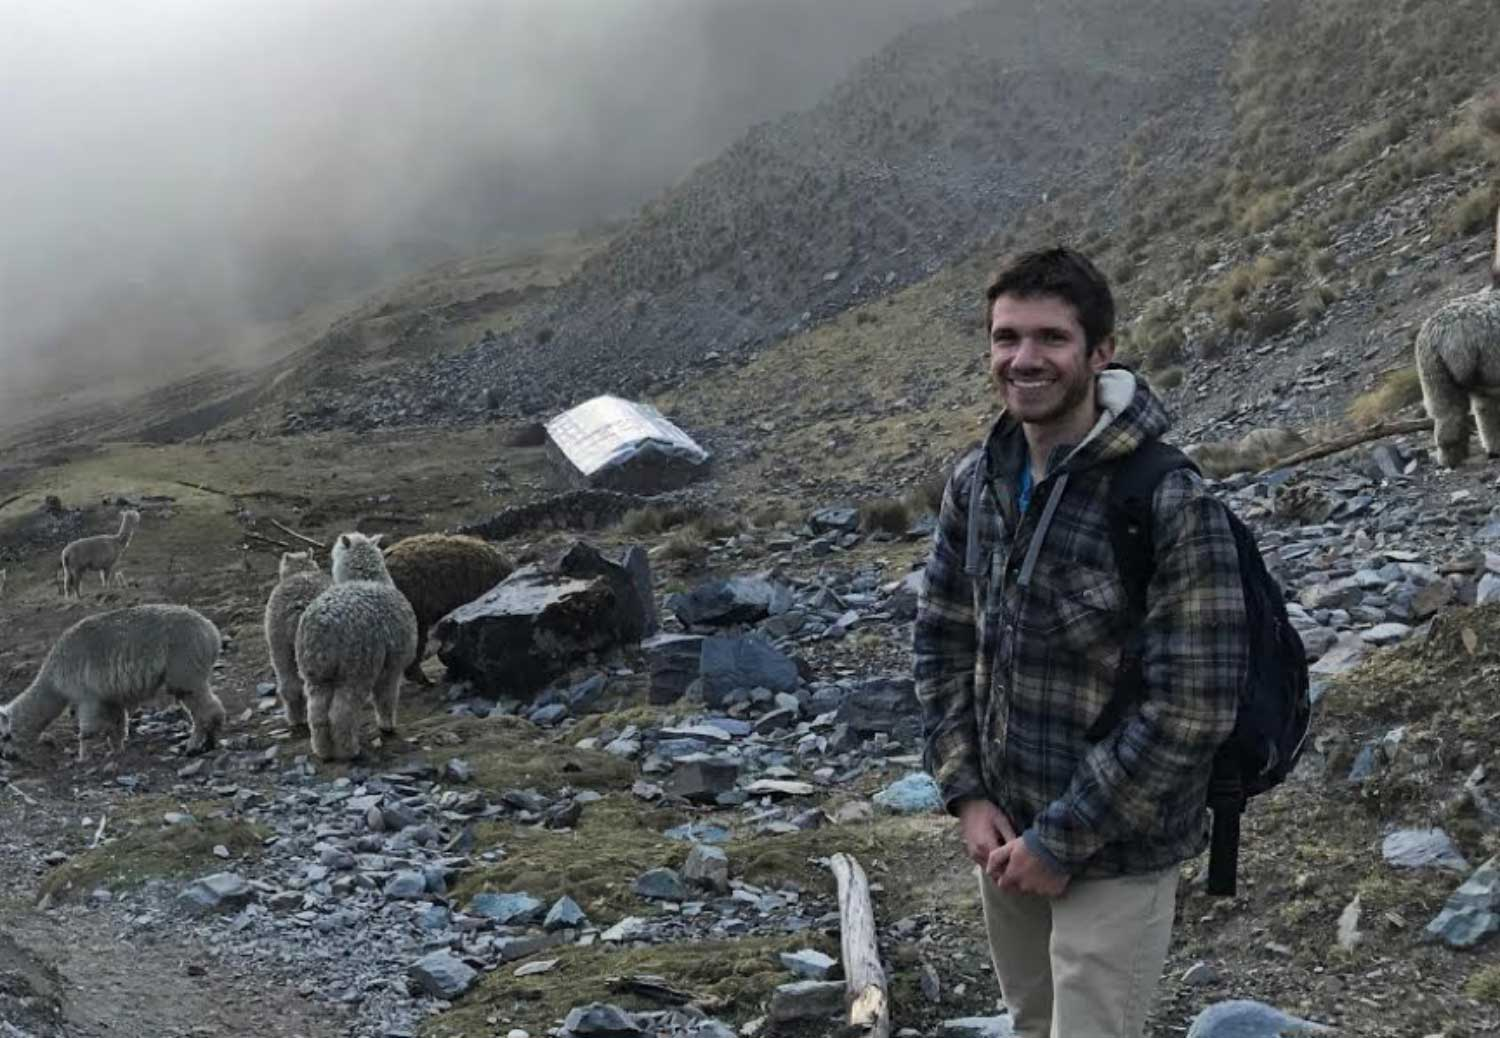 Ryan Cordier in Peru with Engineers Without Borders